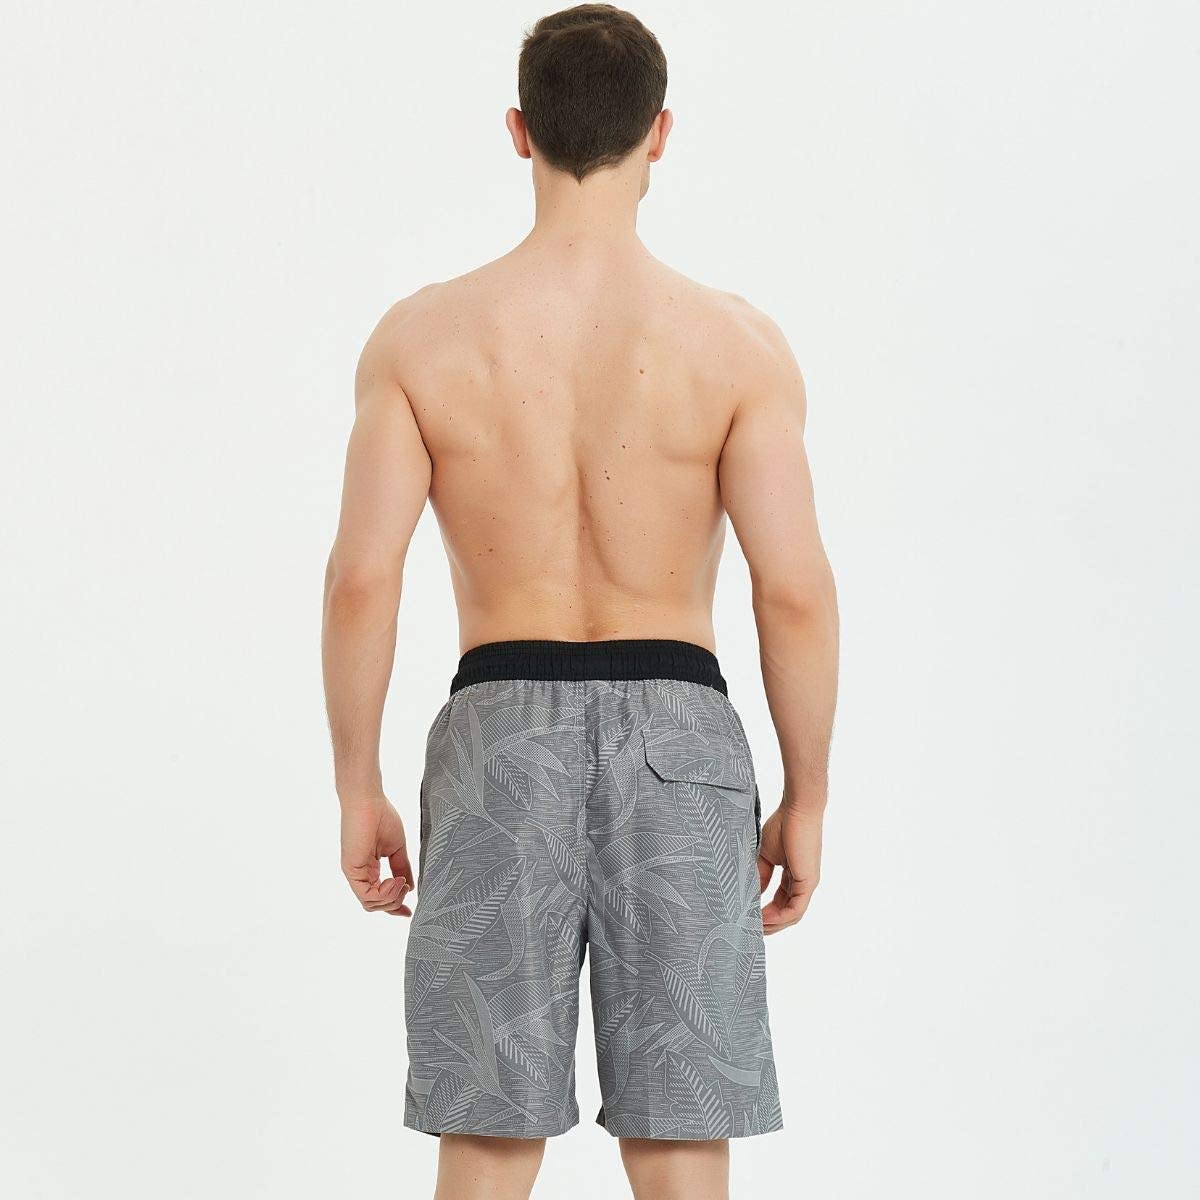 Quick Dry Mens Boardshorts Kailua Surf Mens Swim Trunks Long 9 Inches Inseam Mens Bathing Suits with Mesh Lining